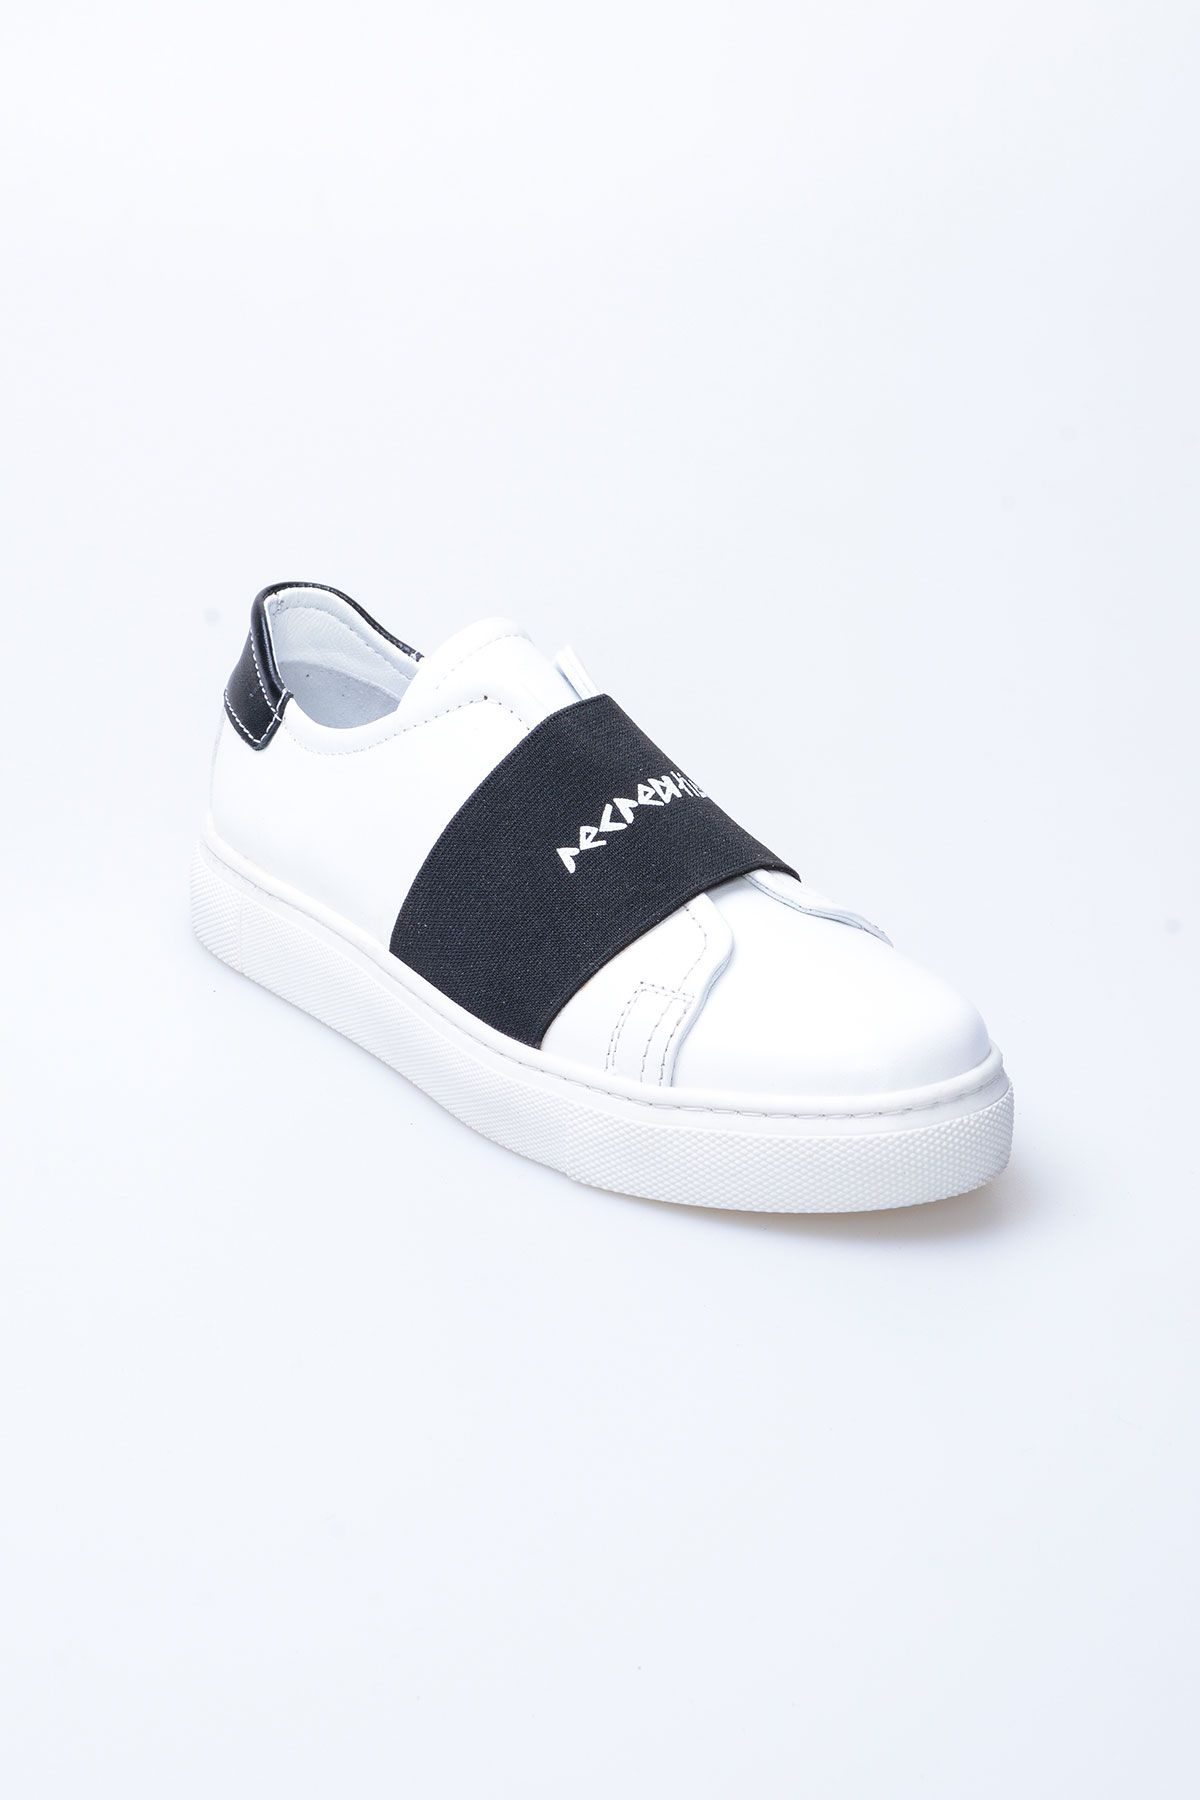 Pegia Recreation Hakiki Deri Bayan Sneaker 19REC101 Siyah